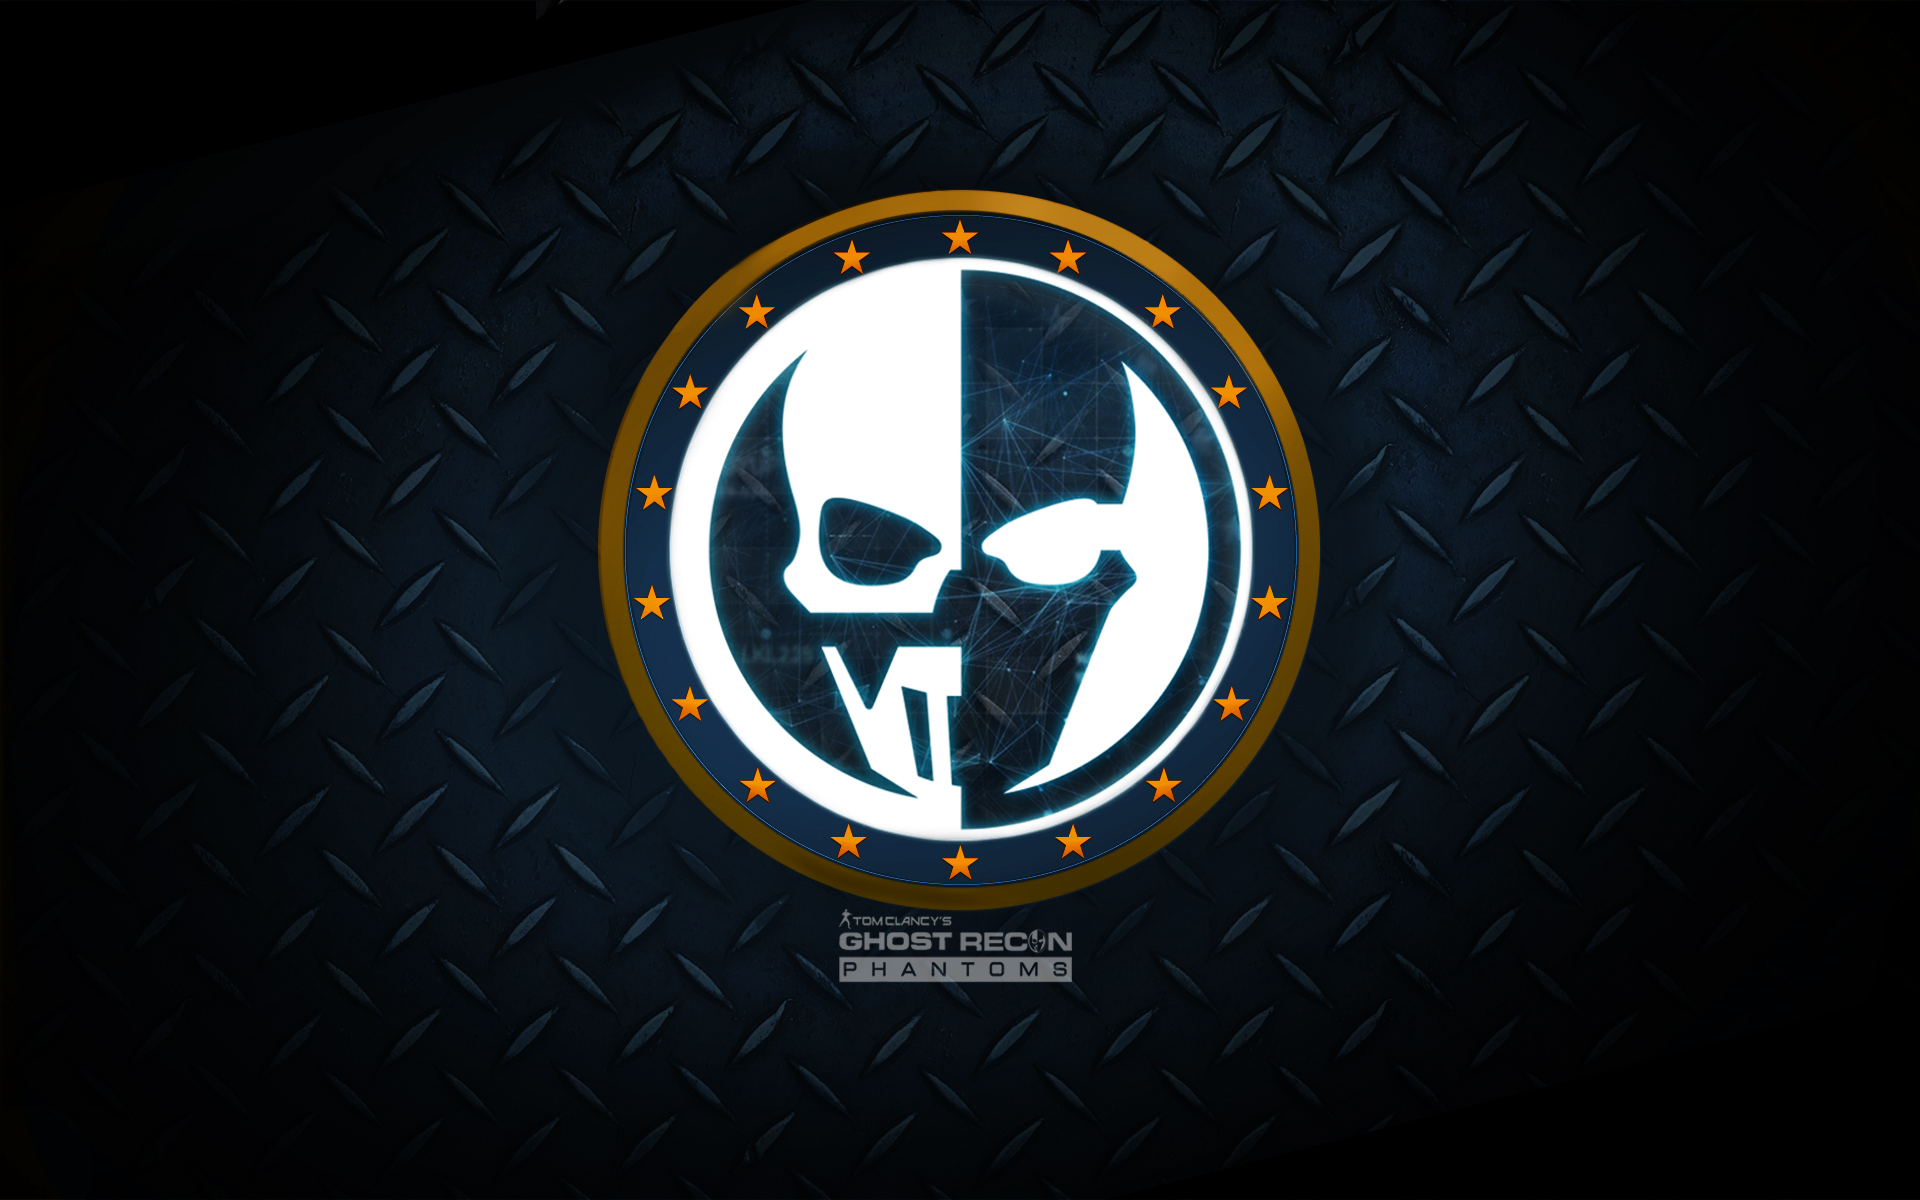 Tom Clancy's Ghost Recon Phantoms wallpaper. by ...